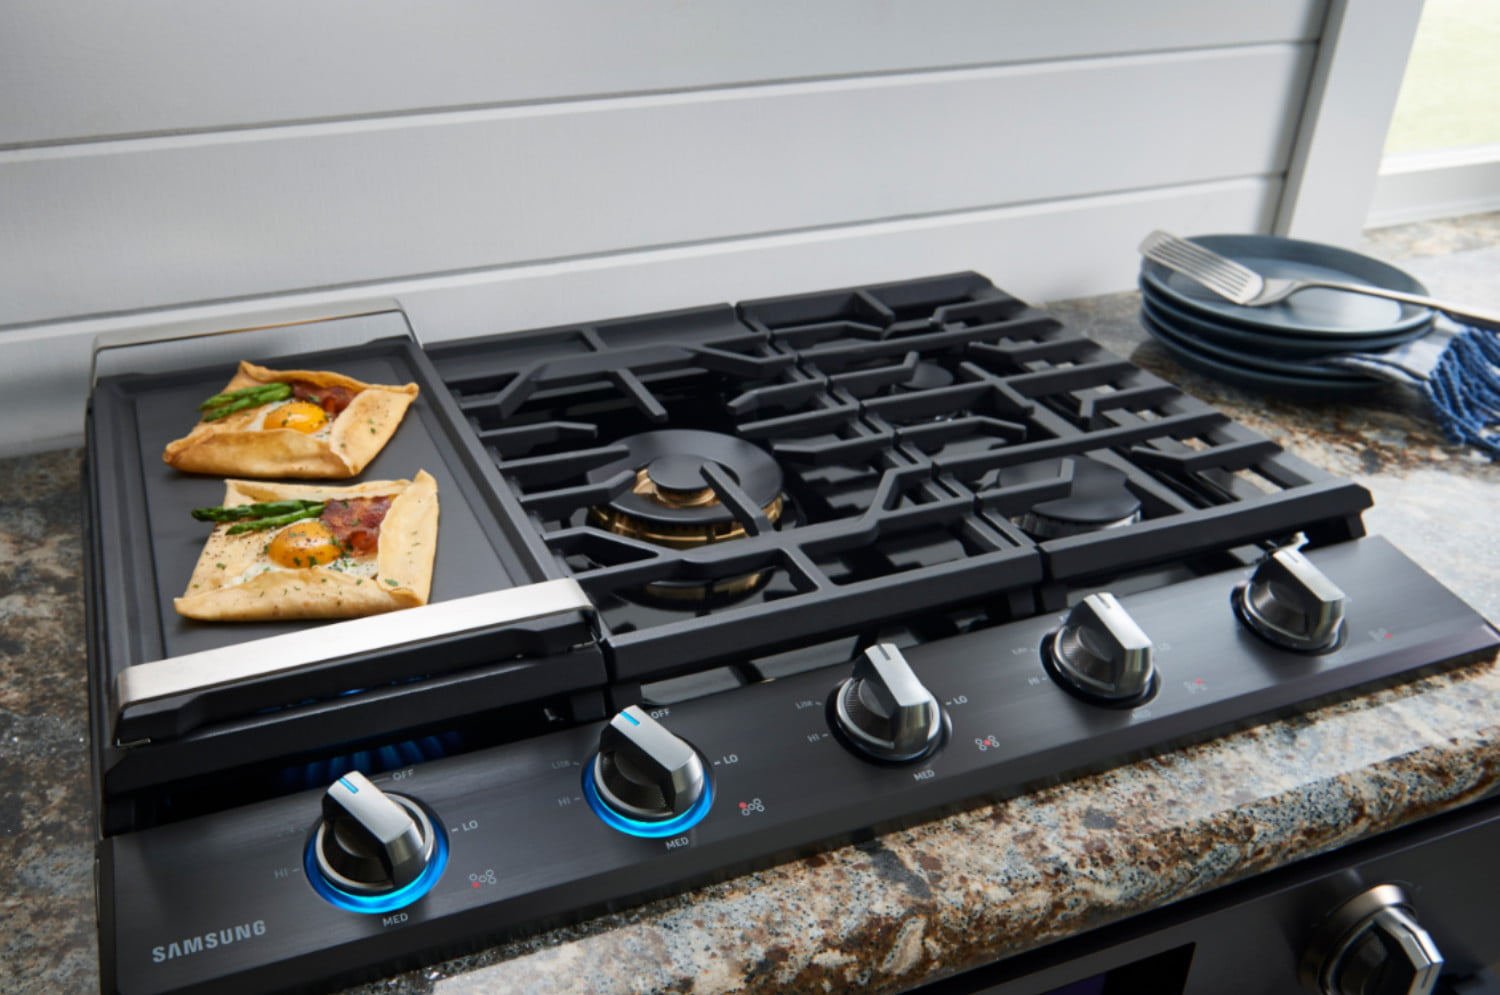 summit cooktop rangetops viking burner inch style into gas countertop series stainless in stove ranges sealed look a